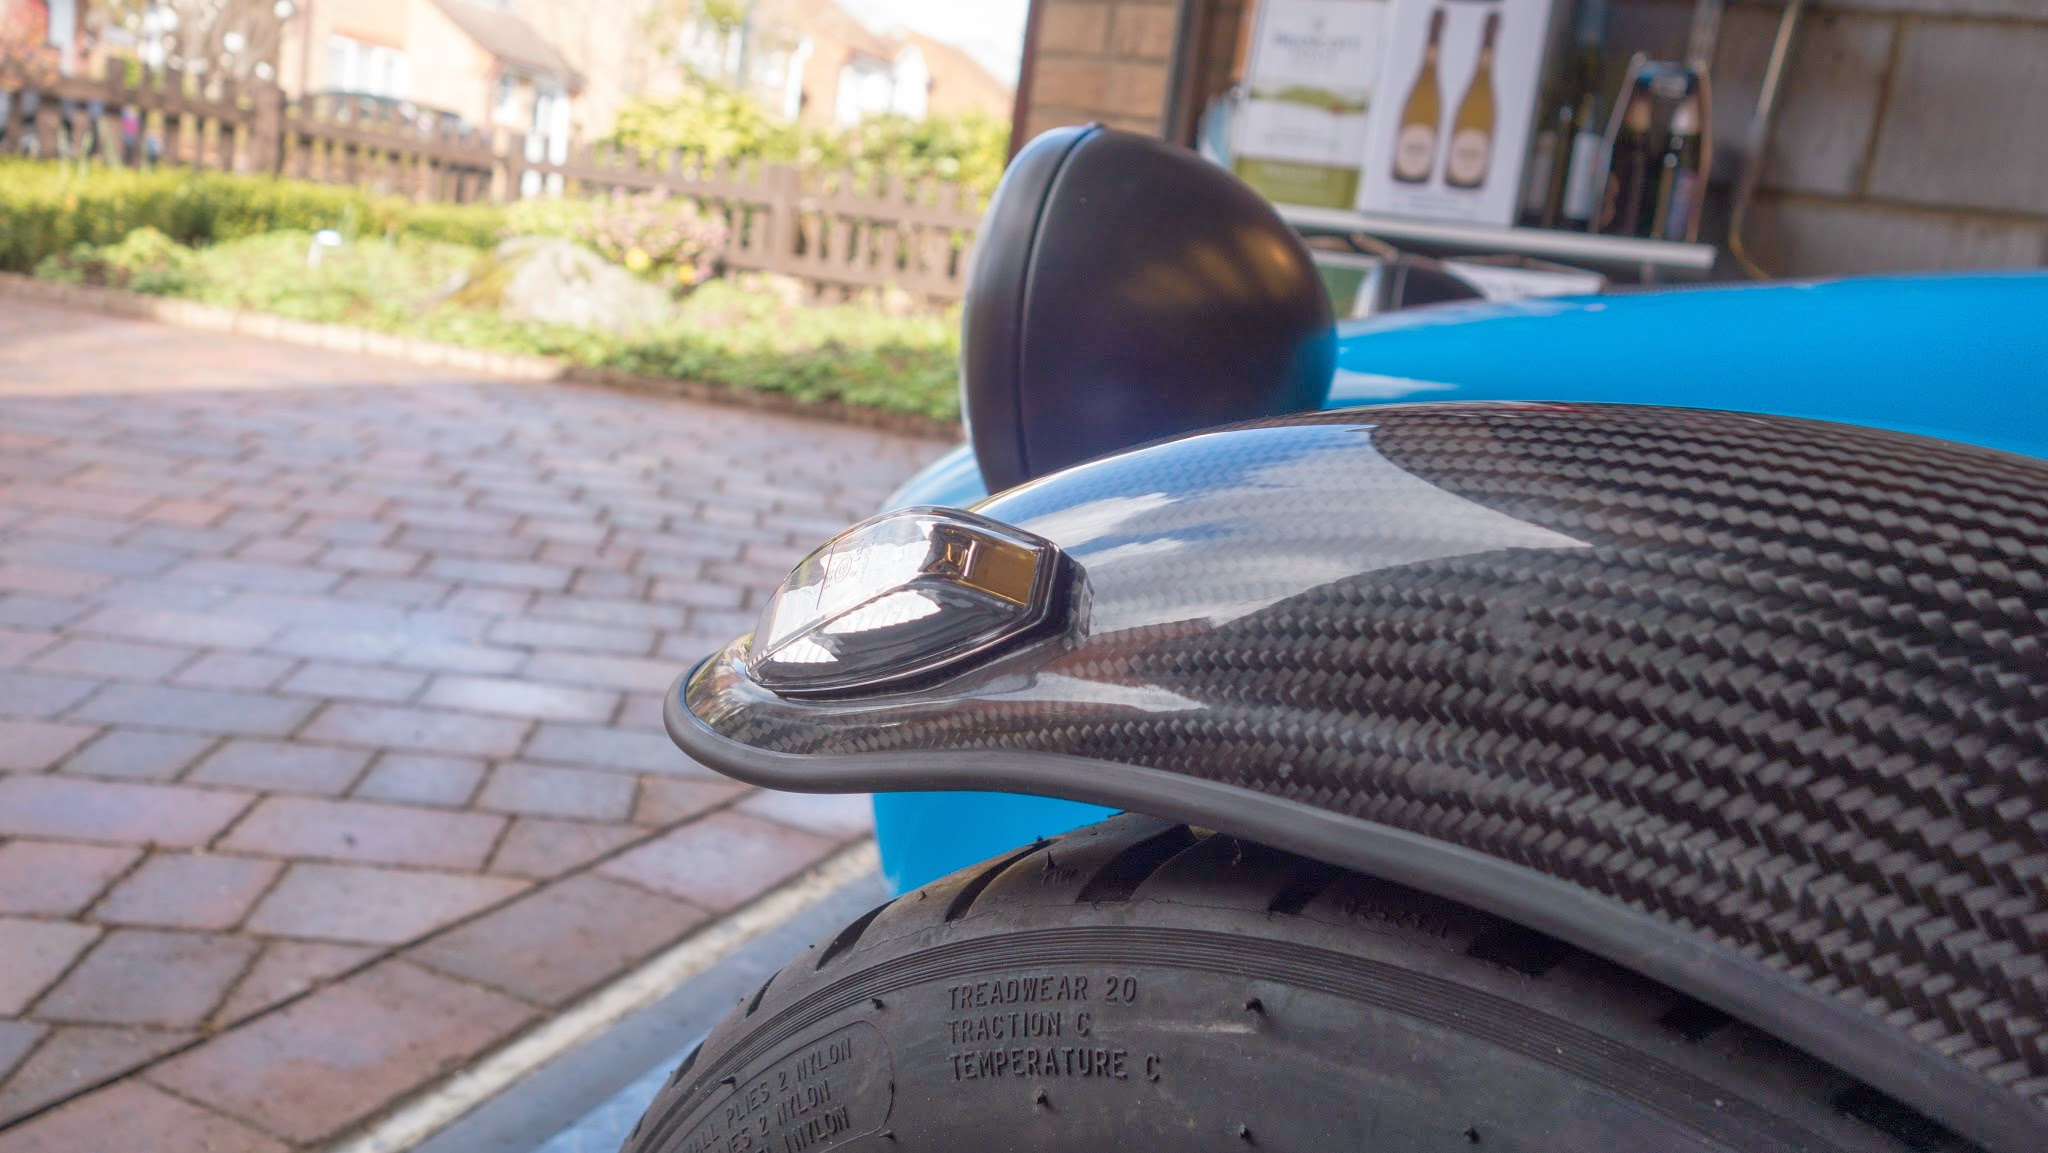 I was initially happy with the aggressive angle of the indicator, but later decided a flatter angle looked better